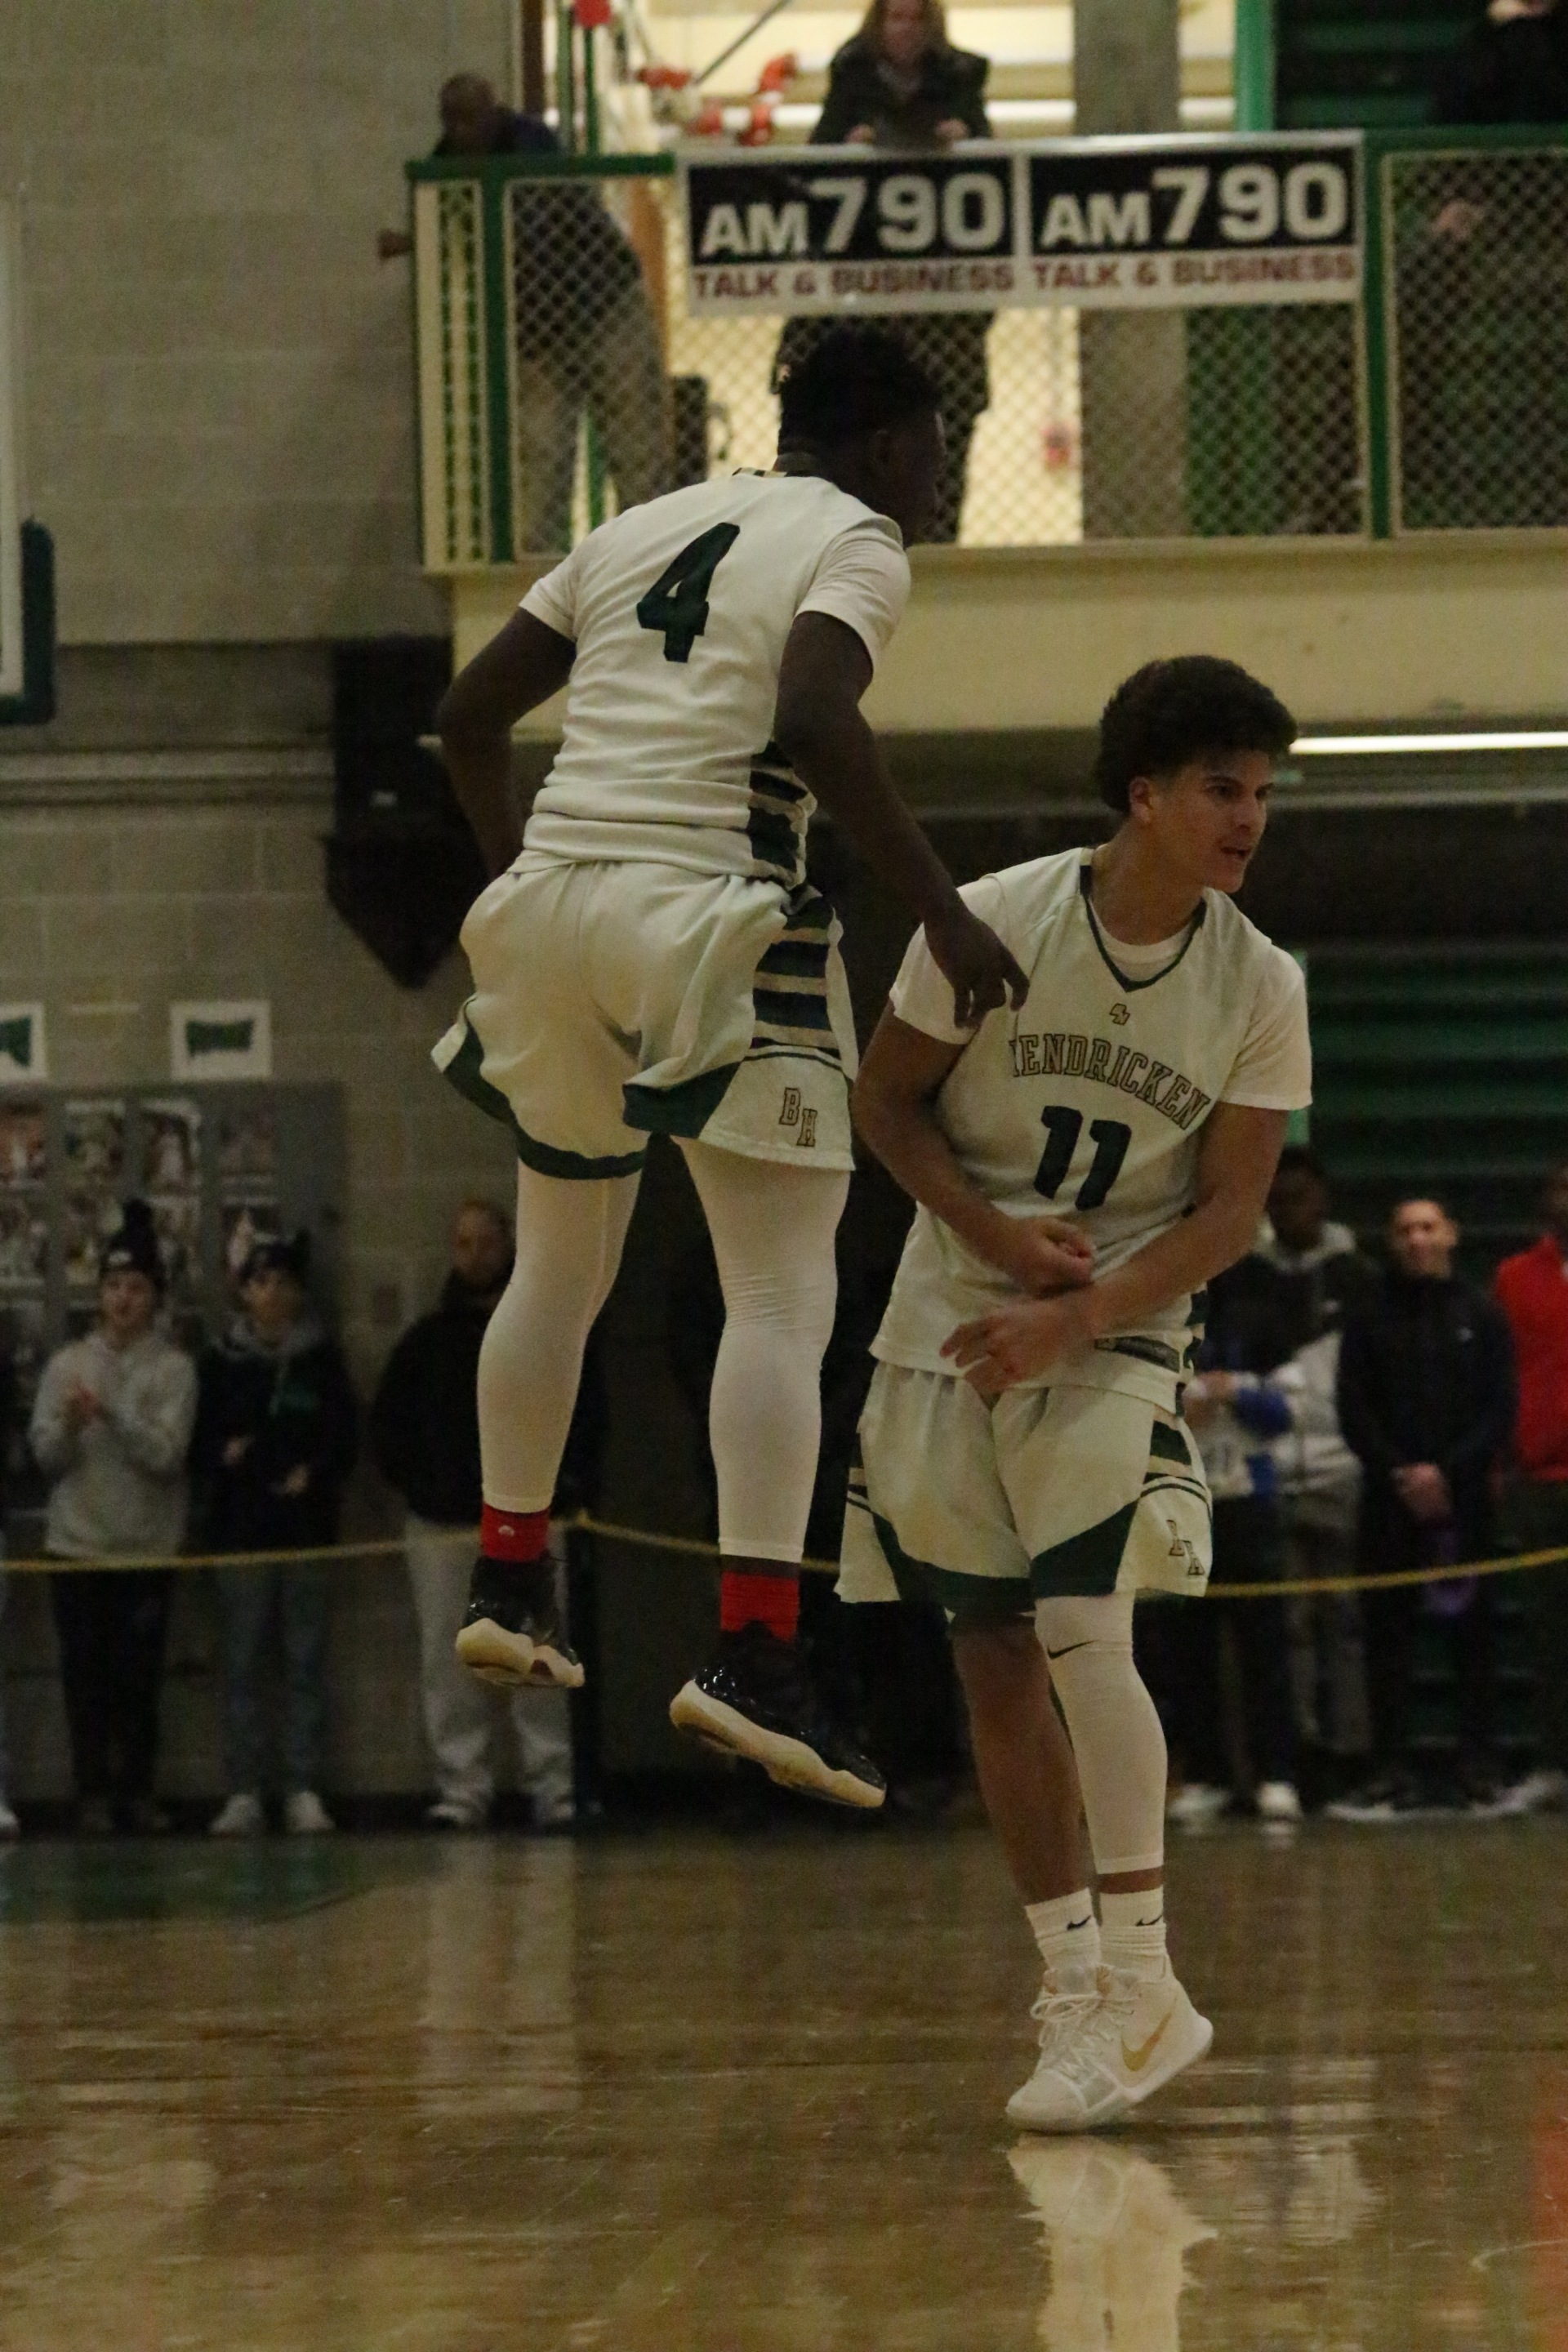 Mt. Pleasant High School vs. Bishop Hendricken High School - Cranston, Rhode Island - Men's Basketball 2018